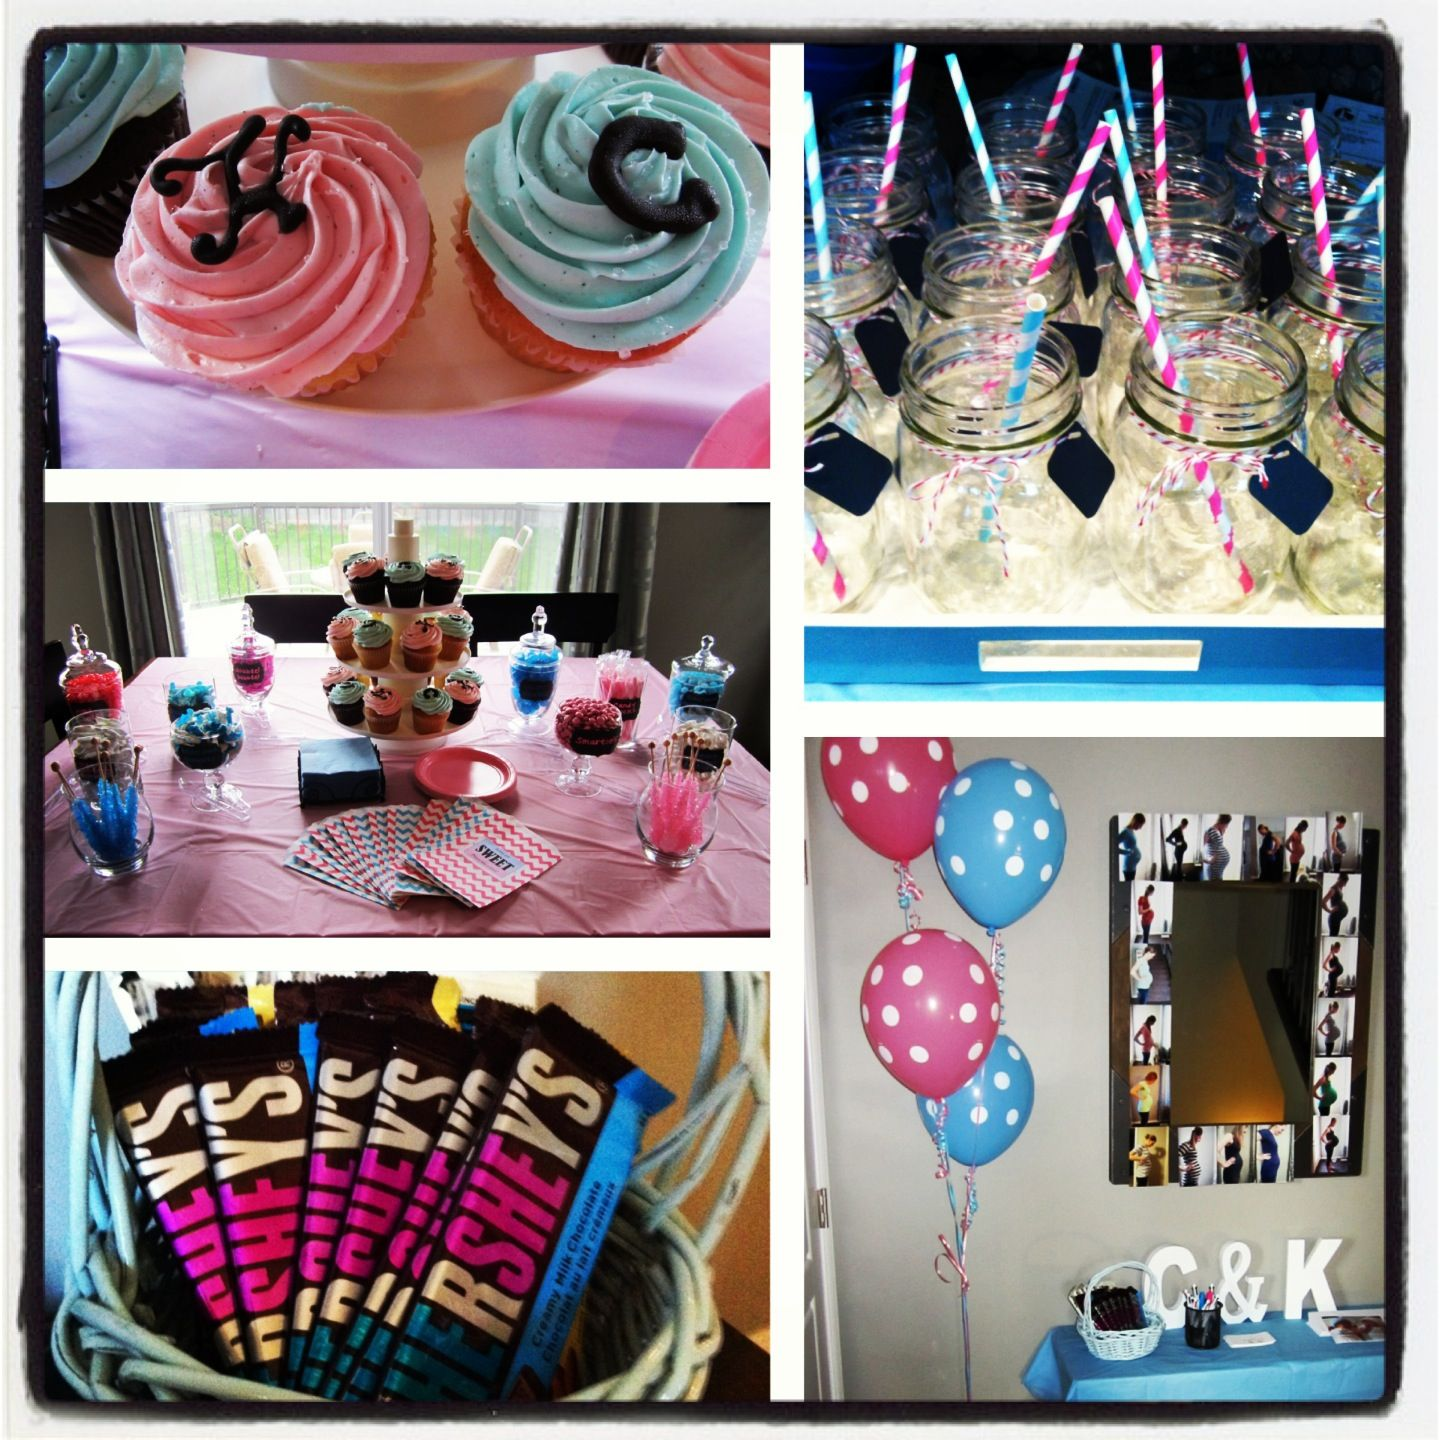 Twin Baby Shower Theme Was Pink And Blue For A Girl And A Boy